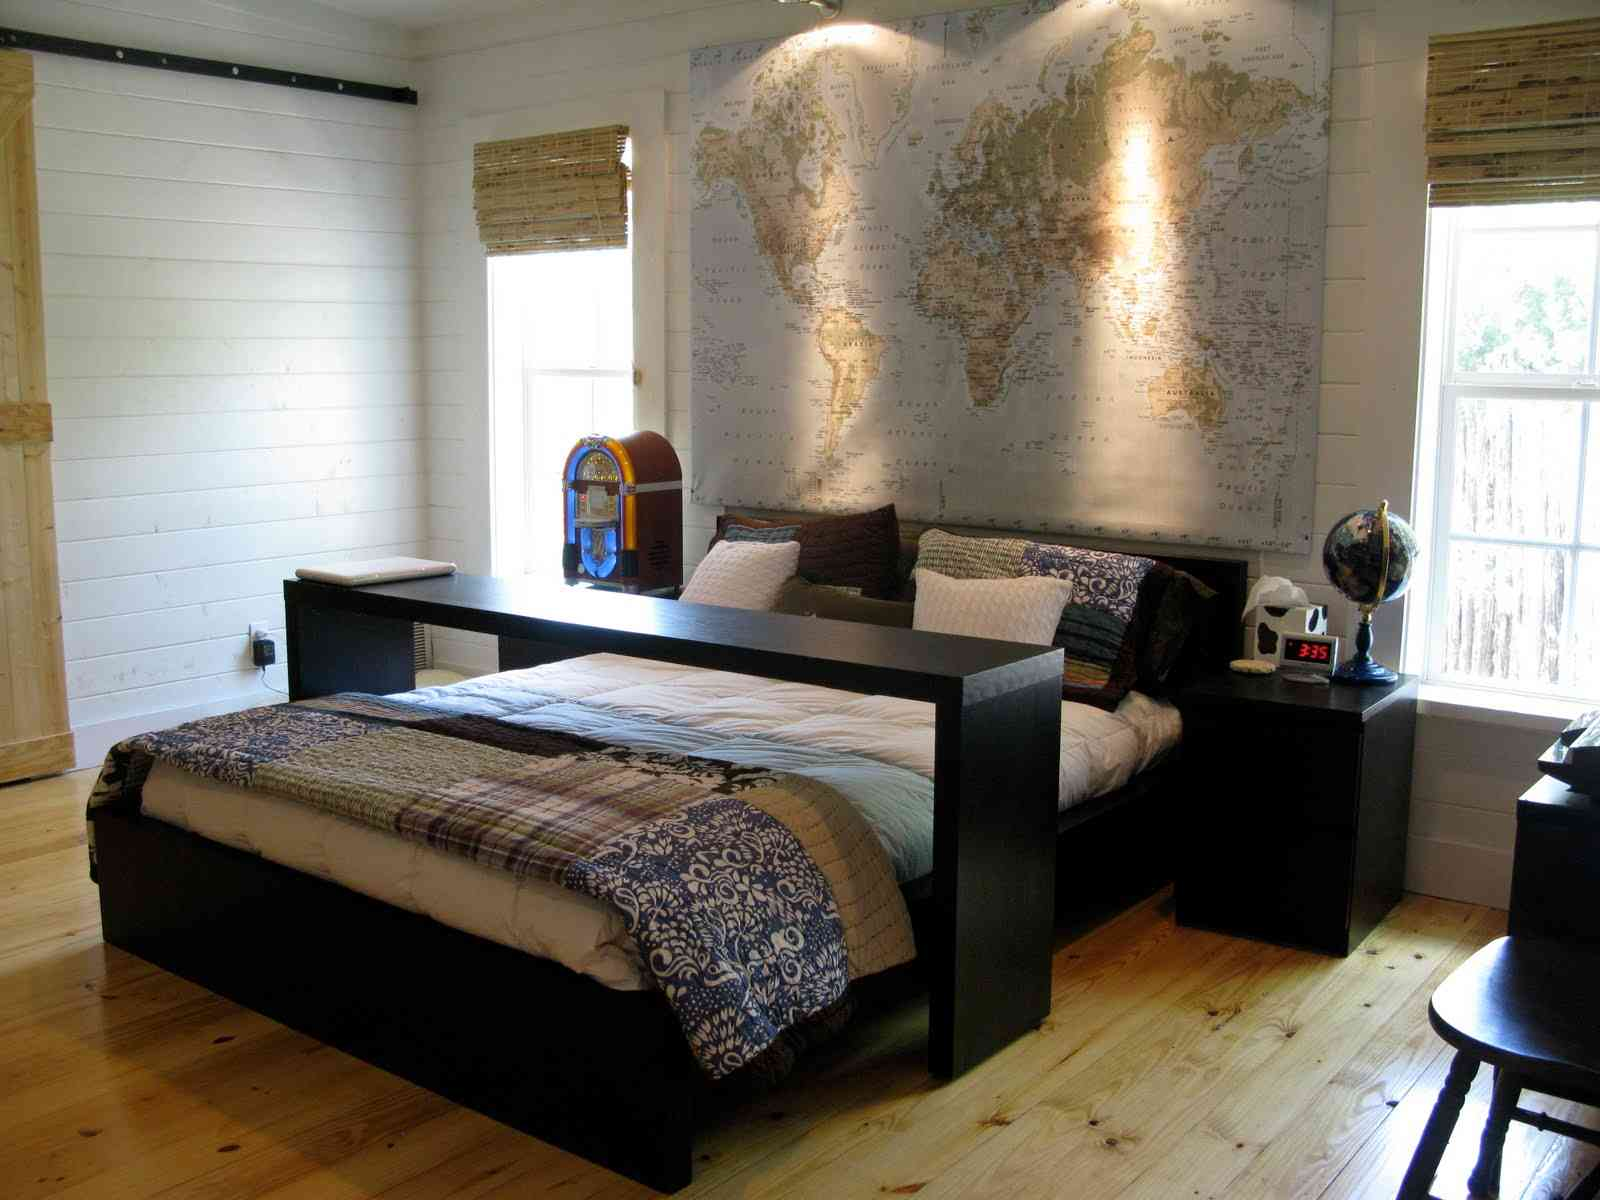 Bedroom furniture from ikea new bedroom 2015 room for I need bedroom furniture